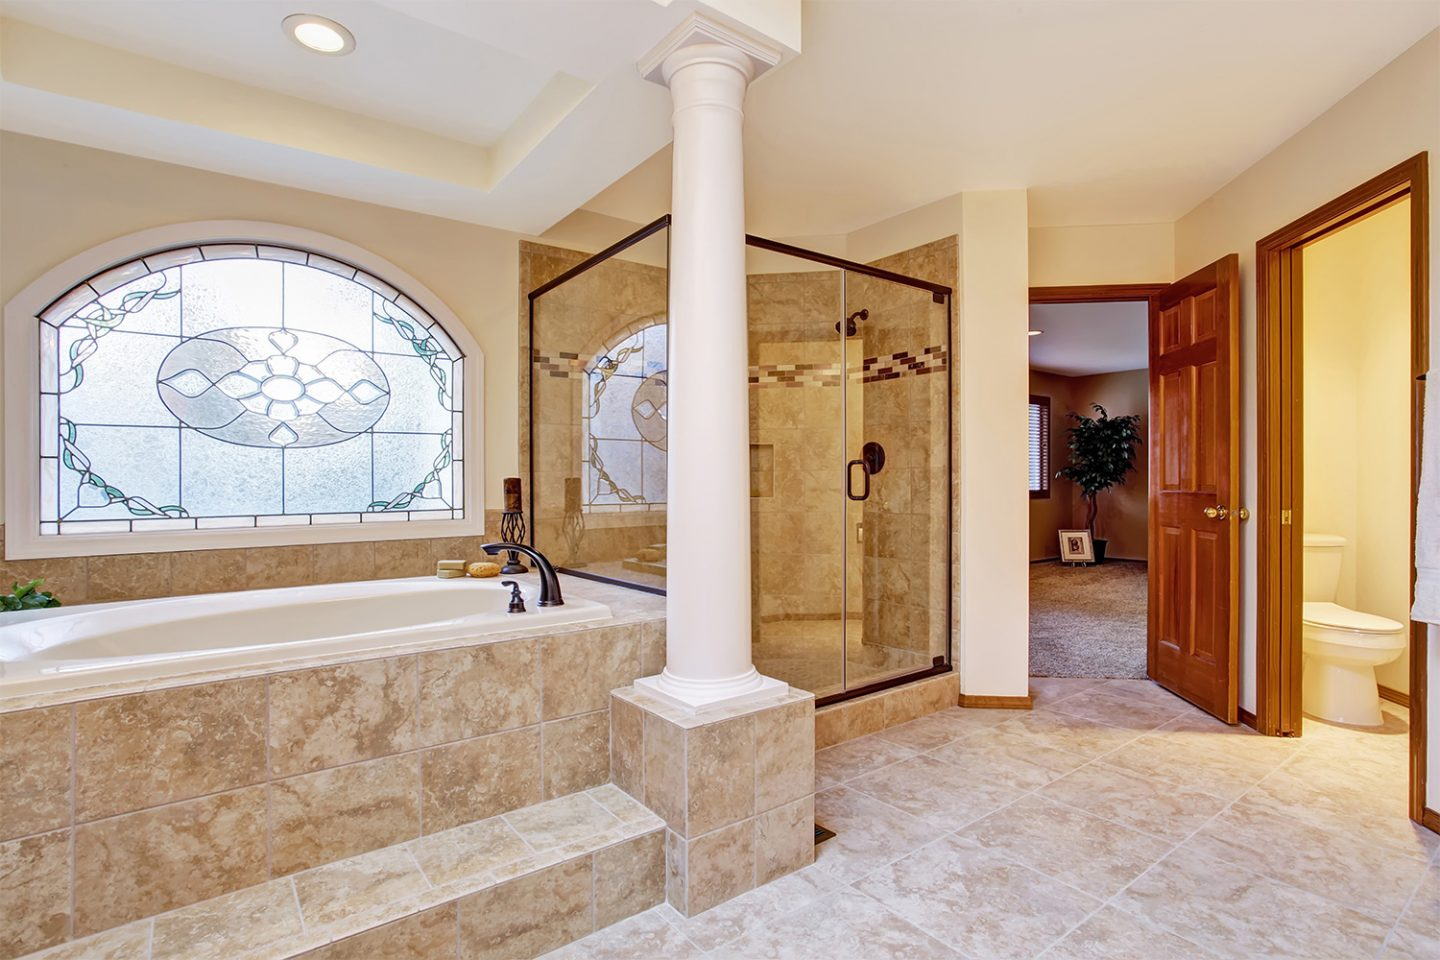 Luxury master bathroom with ornate wooden column